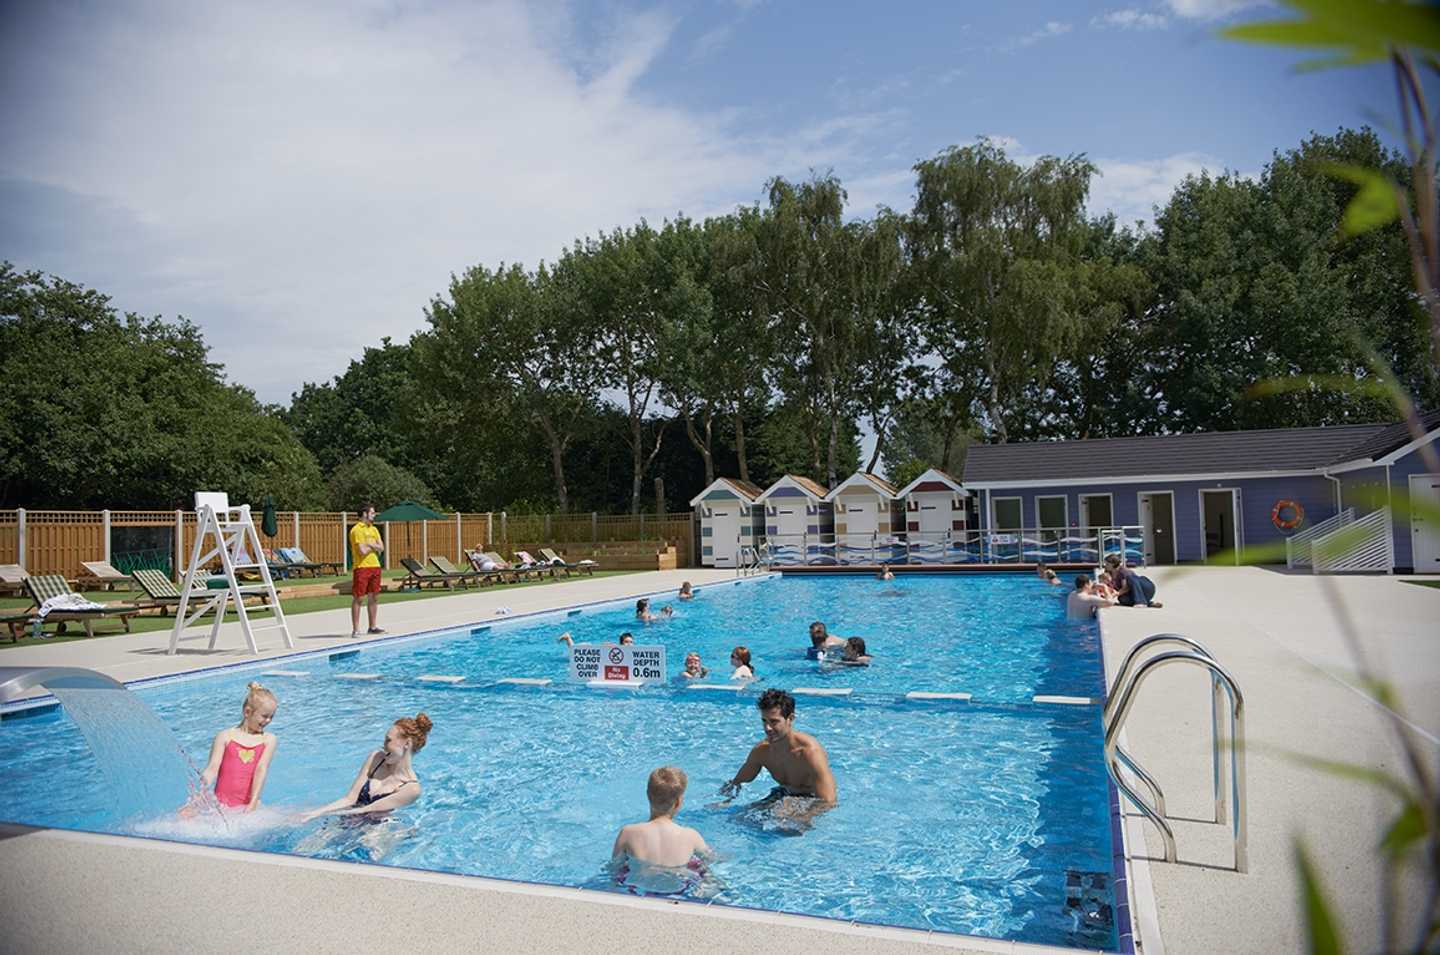 Guests playing in the outdoor pool